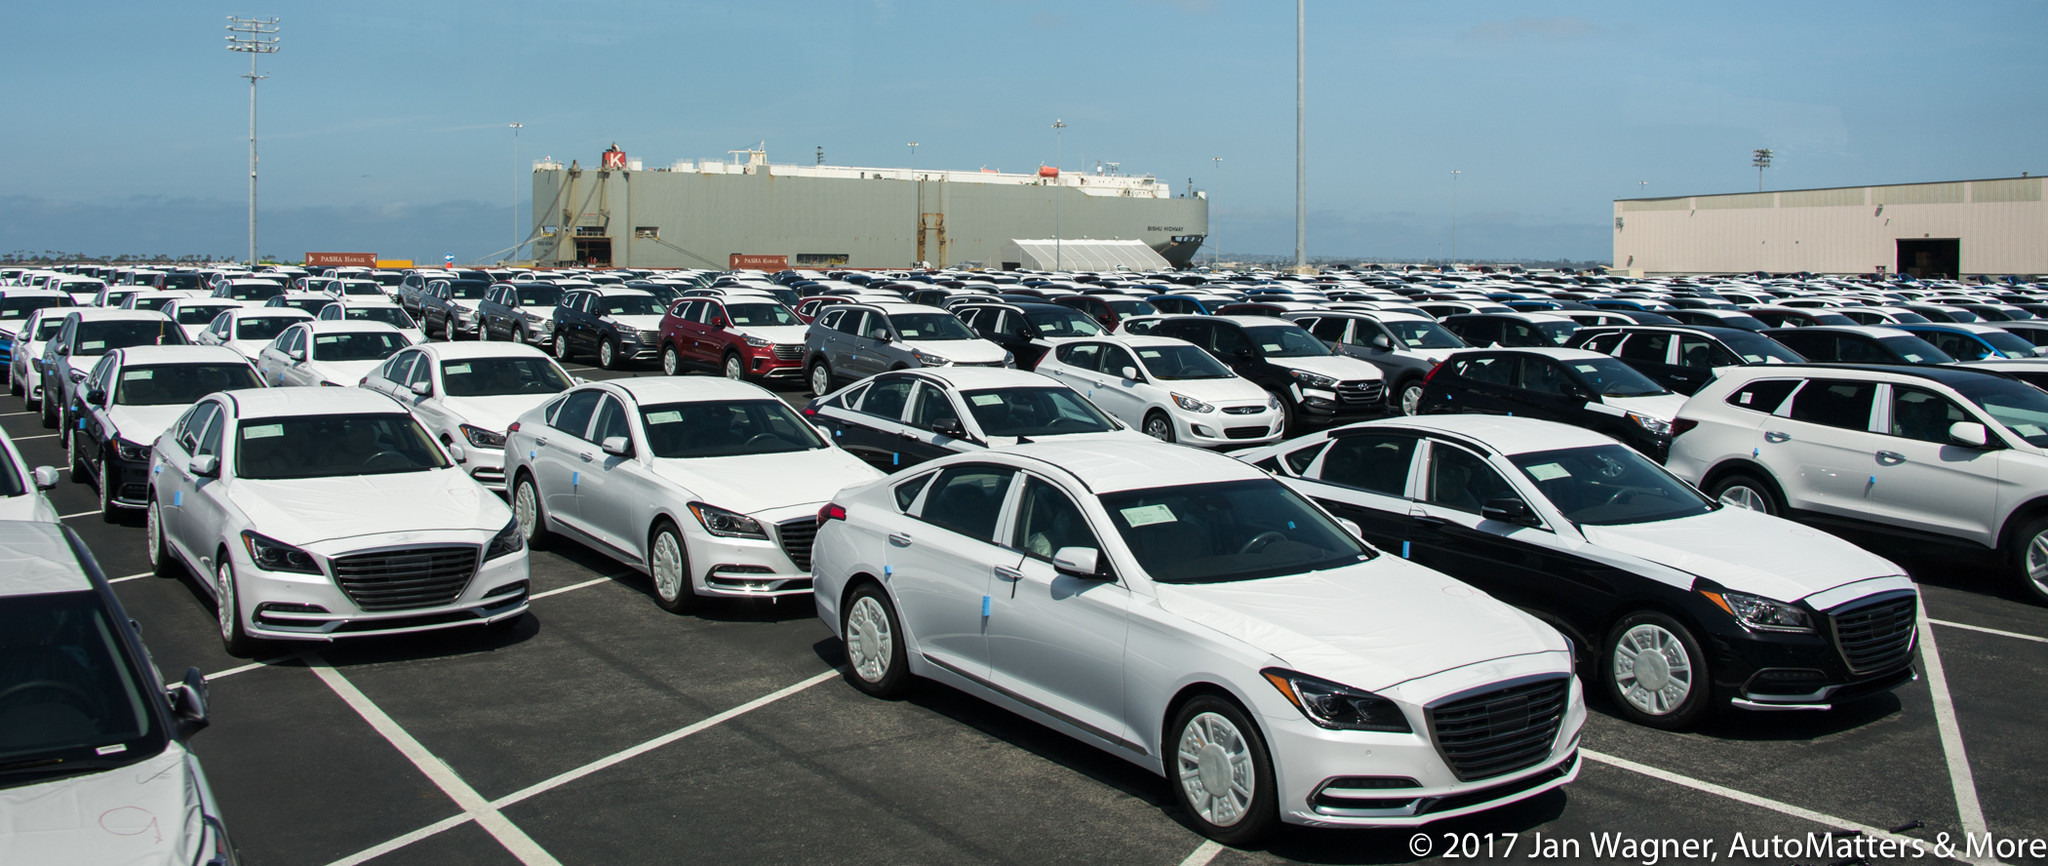 New vehicles unloaded at the Port of San Diego